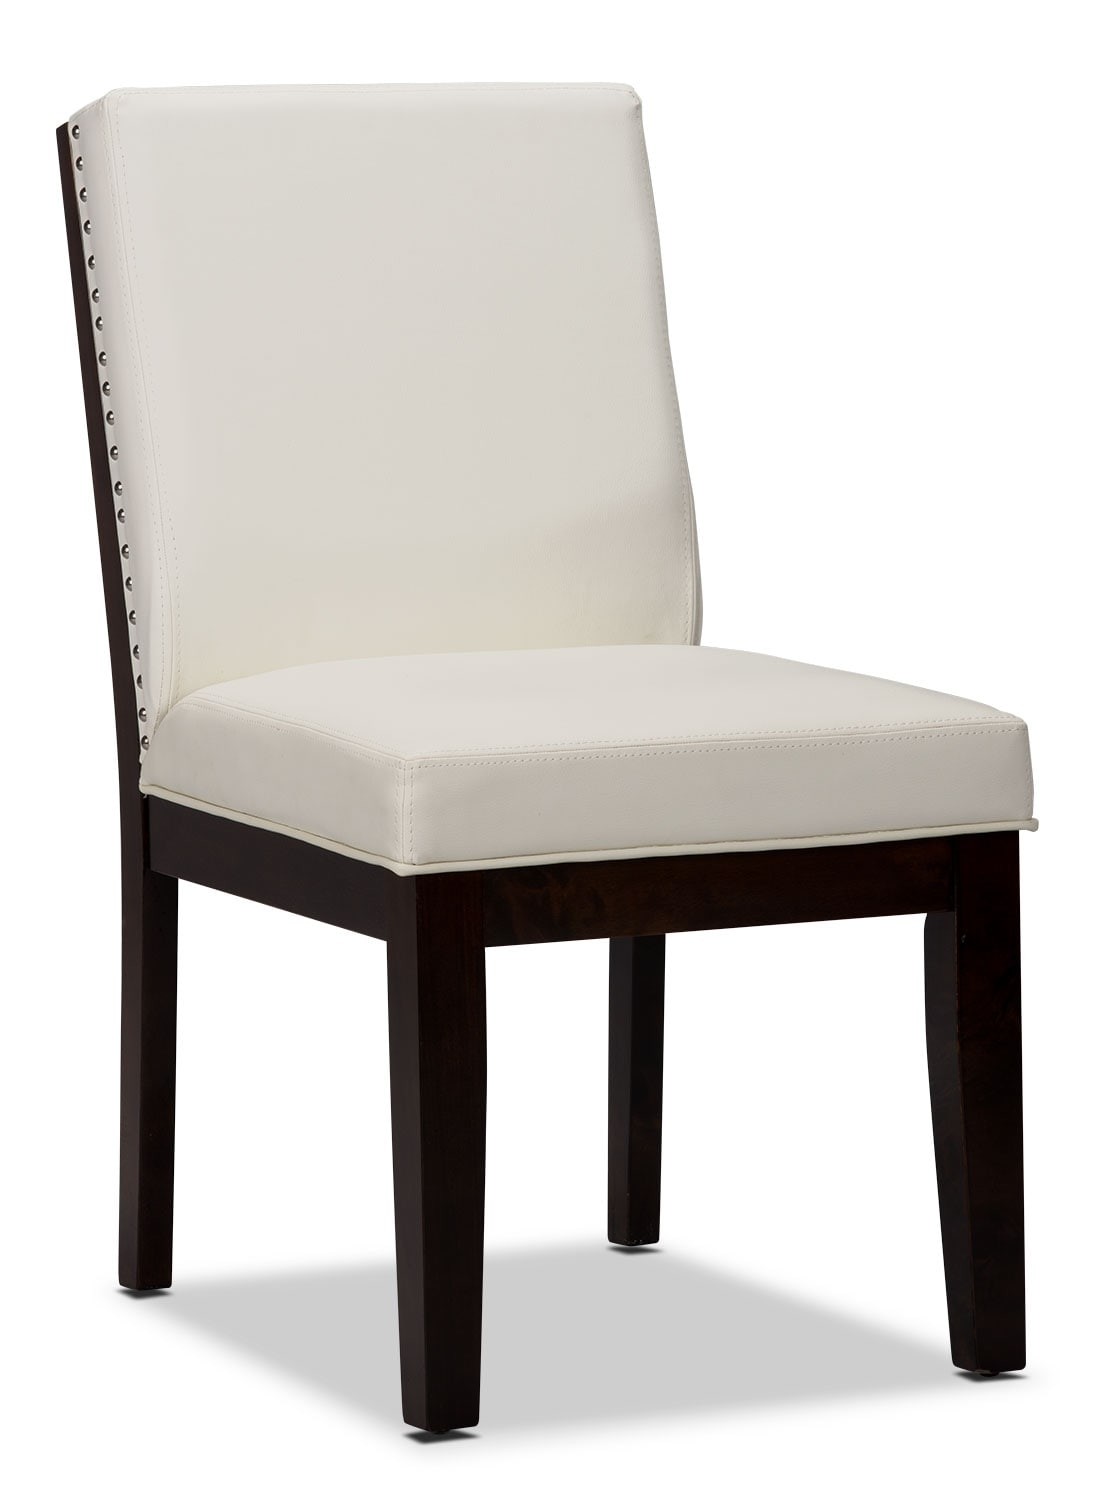 Dining Room Furniture - Couture side Chair - White